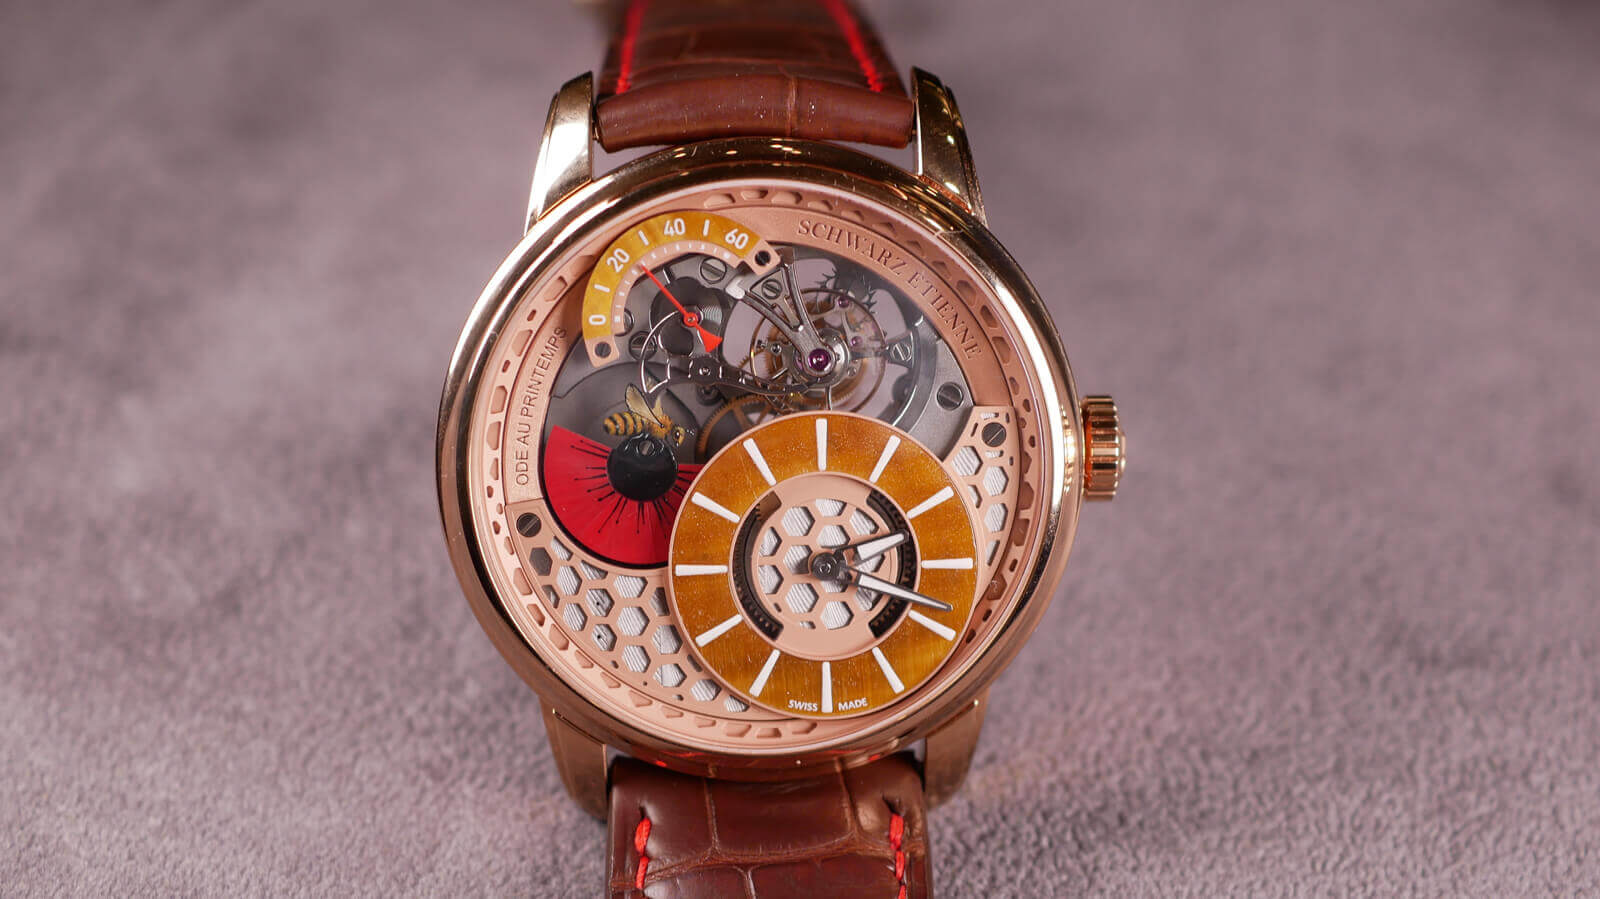 Schwarz Etienne Ode au Printemps | ESCAPEMENT MAGAZINE REVIEWS